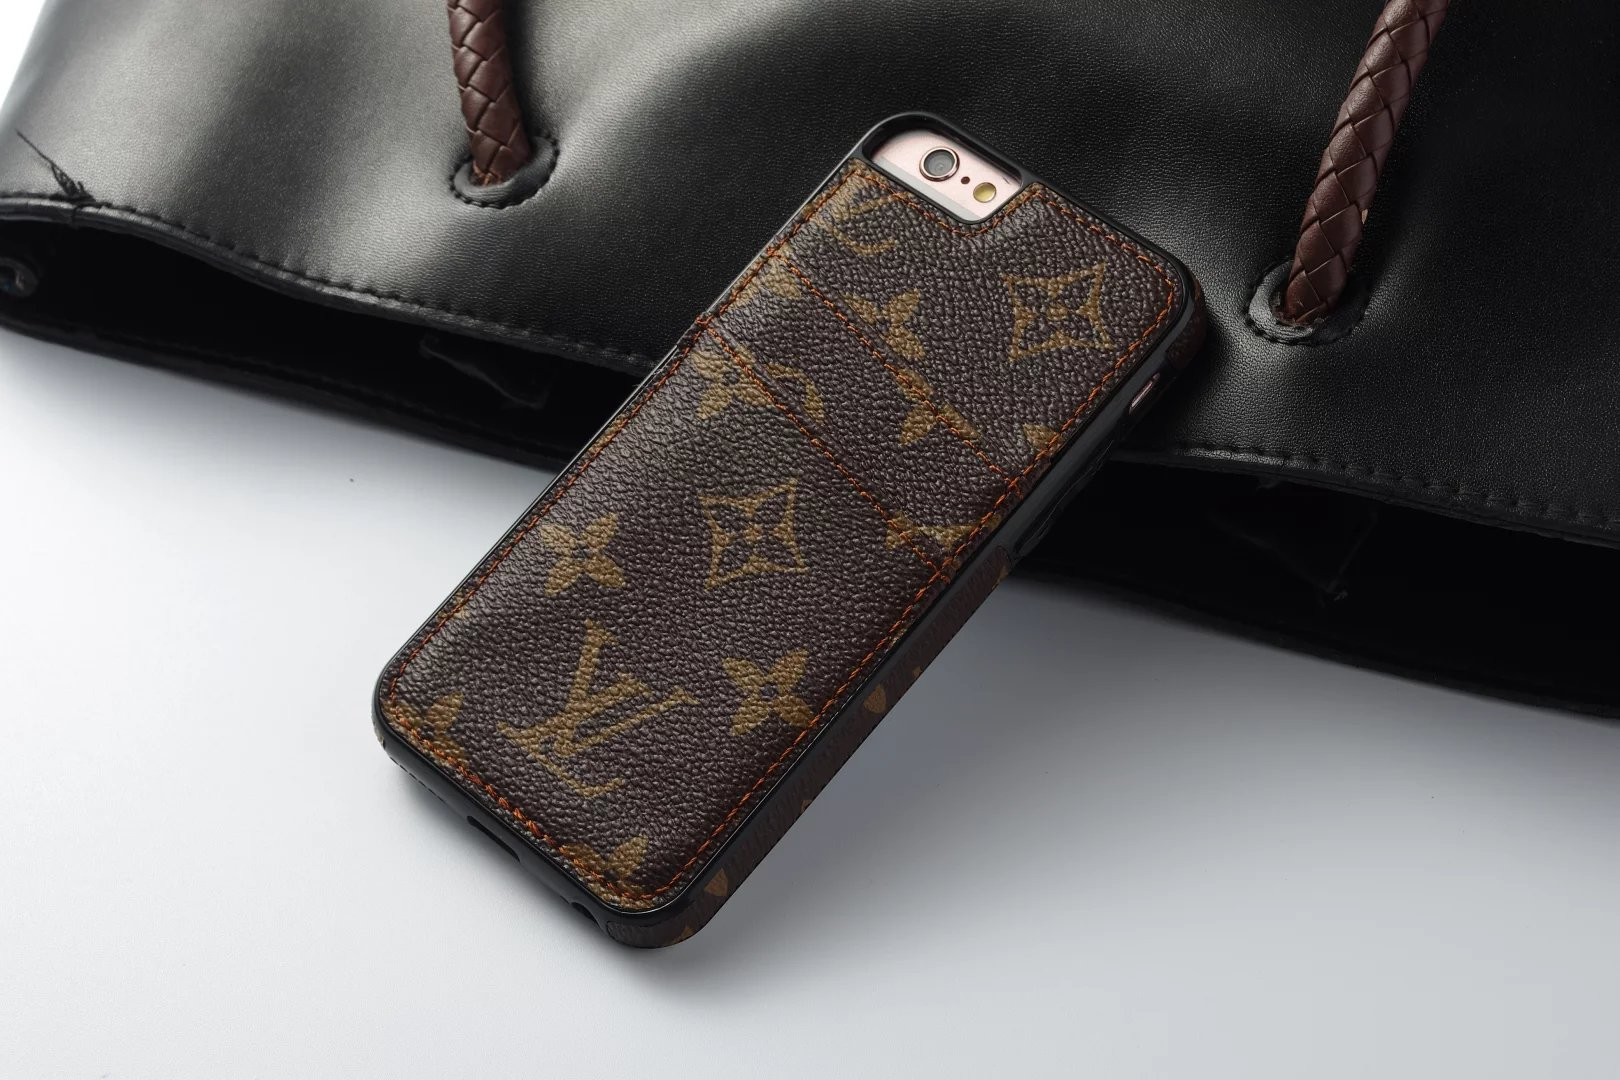 iphone case gestalten eigene iphone hülle erstellen Louis Vuitton iphone 8 Plus hüllen handyhülle s2 8 Pluslbst gestalten handy ca8 Plus erstellen iphone 8 Plus vergleich coole hüllen iphone 8 Plus handyhülle iphone 8 Plus holz antivirenprogramm für iphone